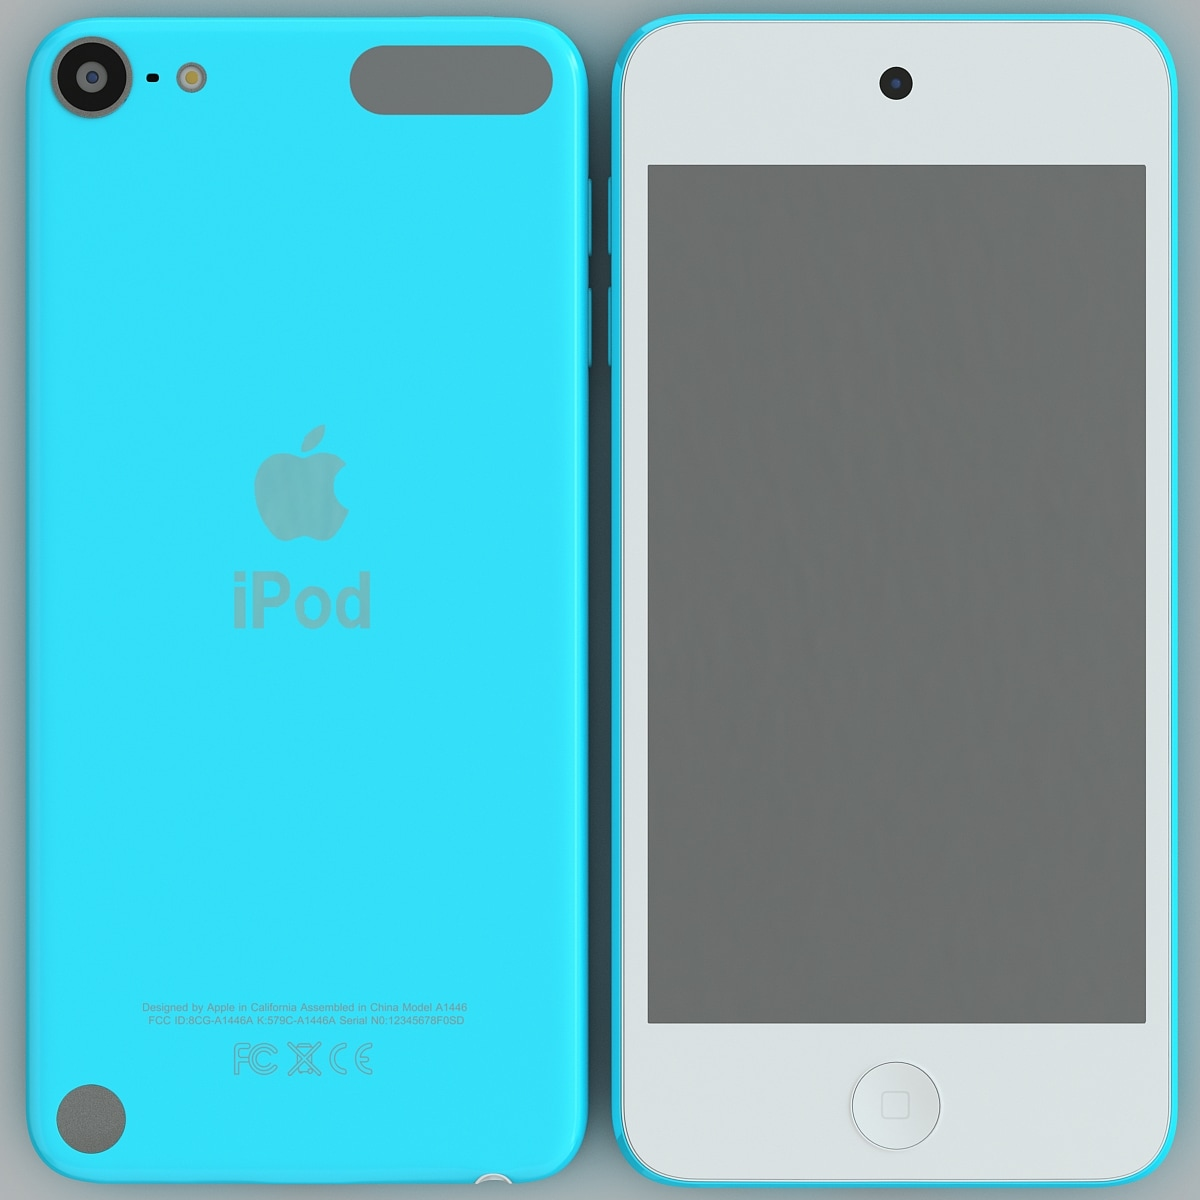 Ipod_Nano_Generation_5th_Blue_005.jpg